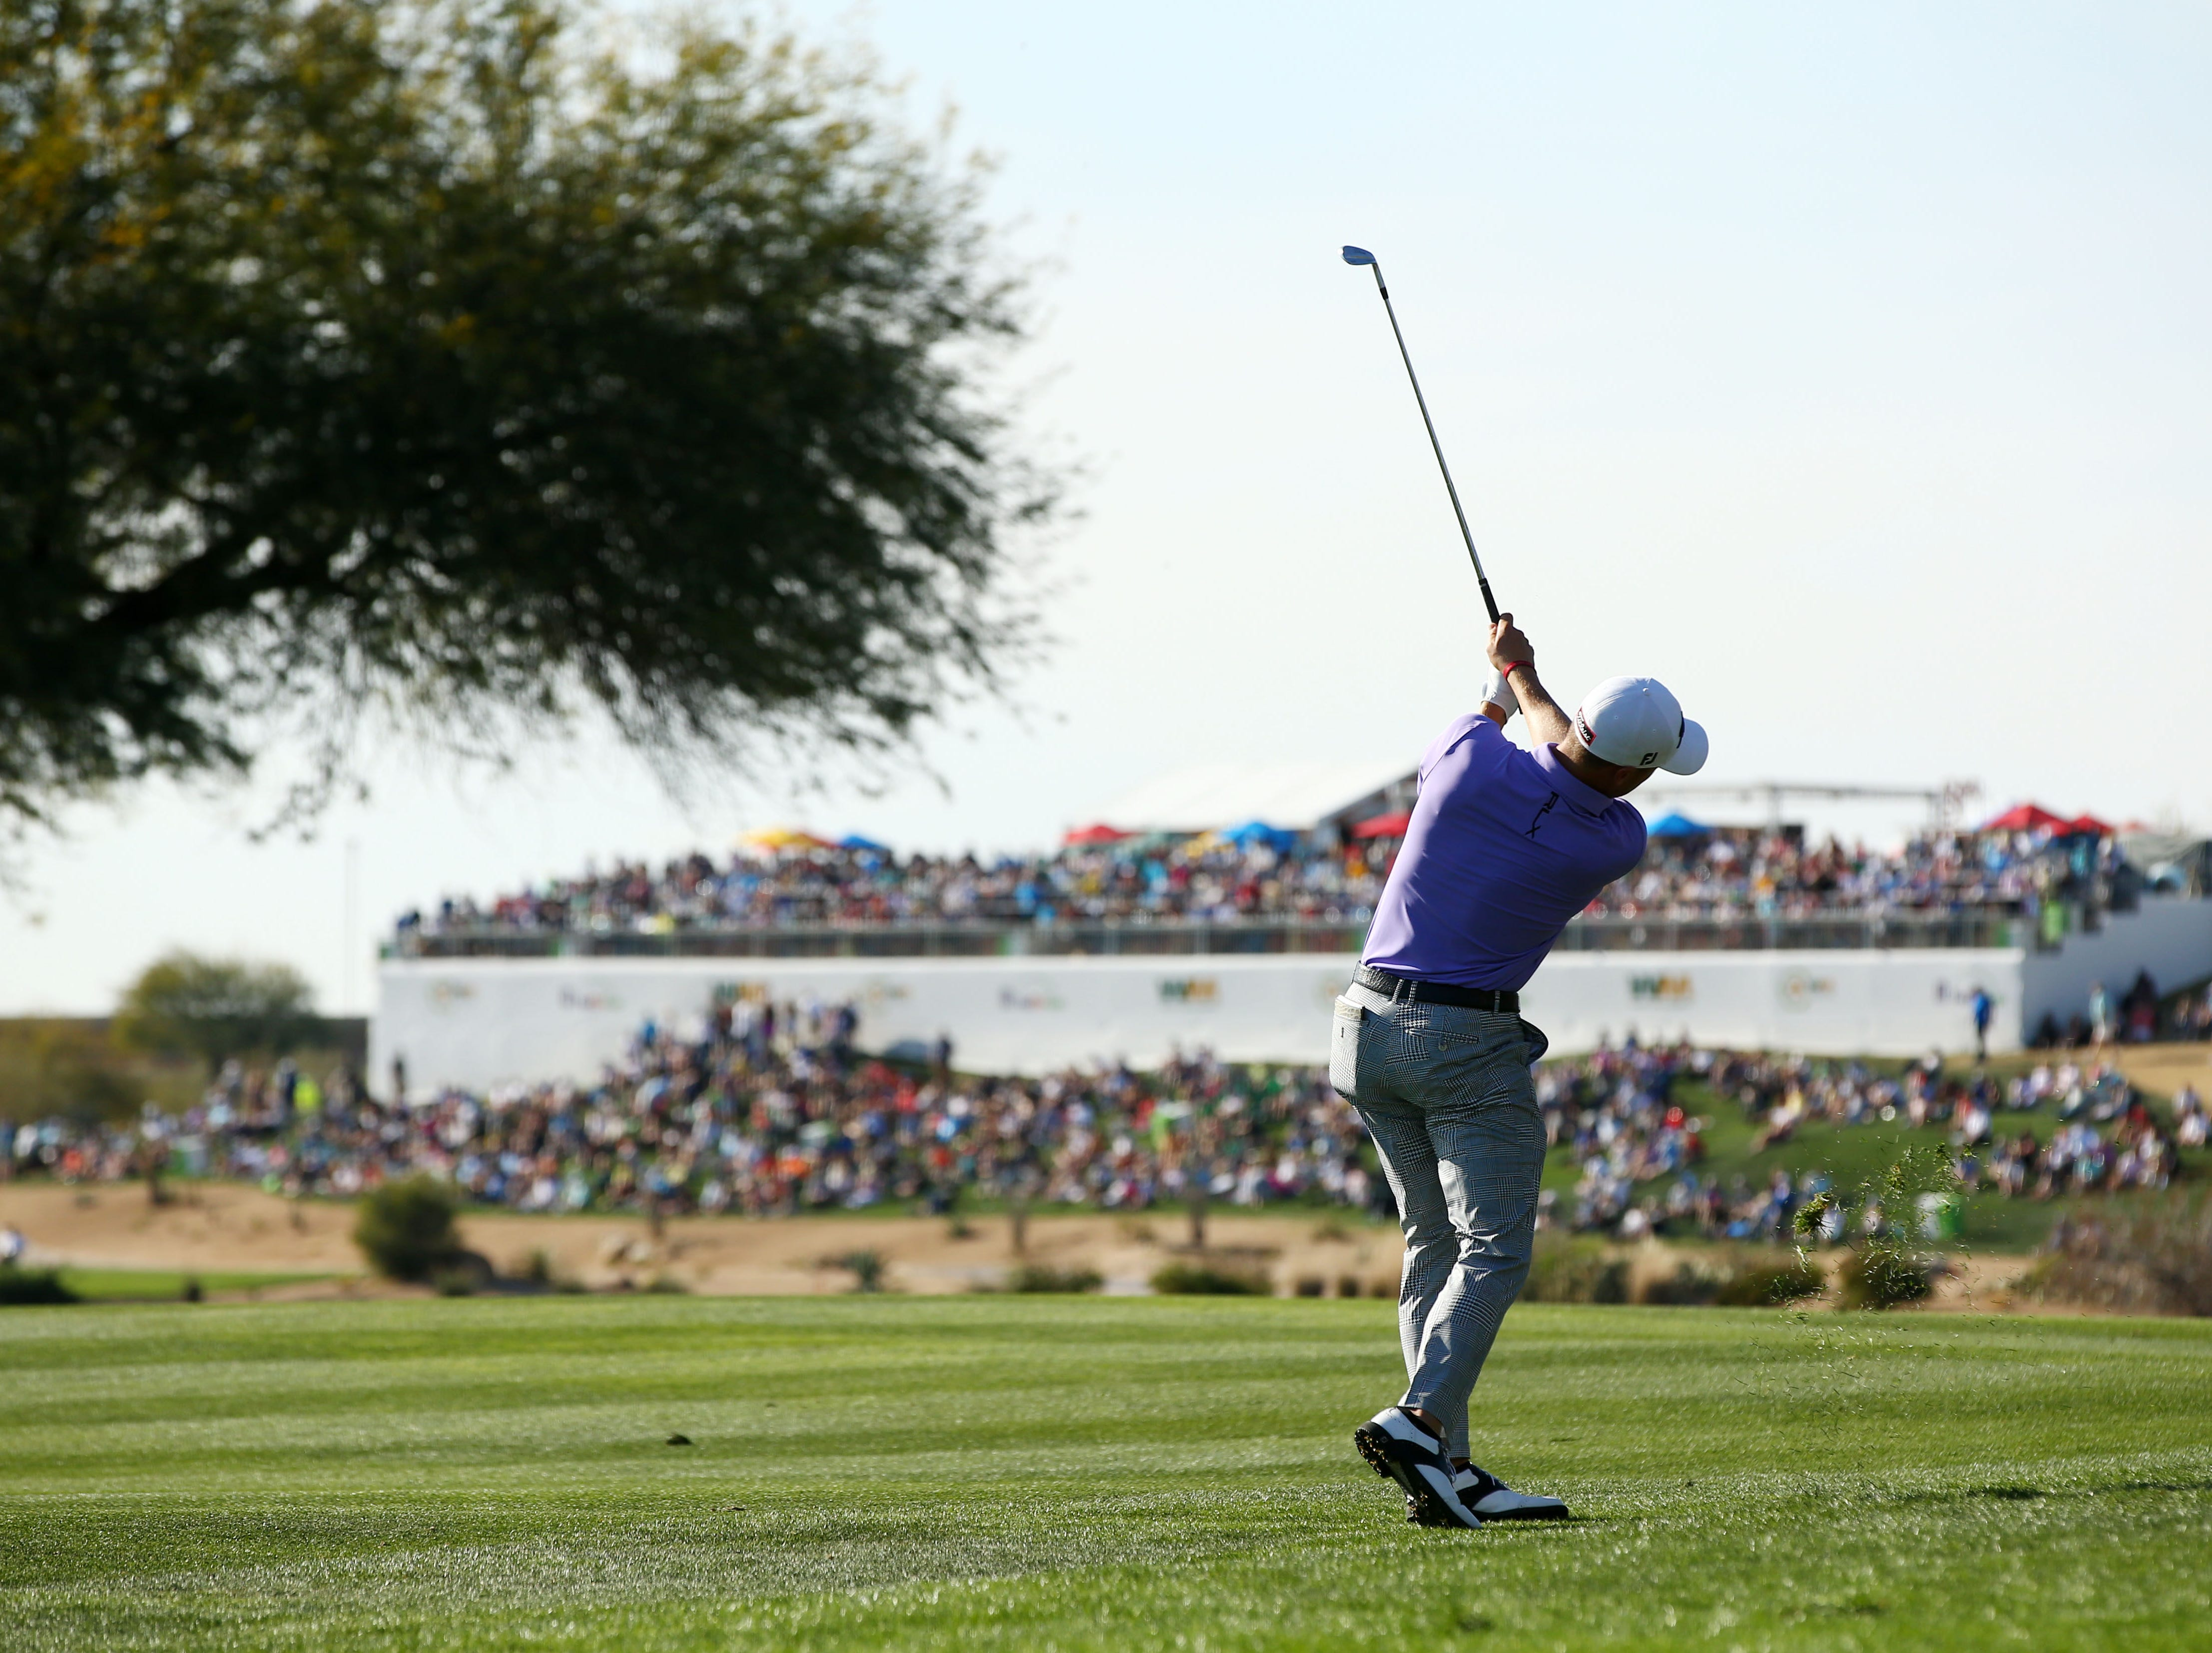 Justin Thomas plays his second shot on the 11th hole during second round action on Feb. 1 during the Waste Management Phoenix Open at the TPC Scottsdale Stadium Course.